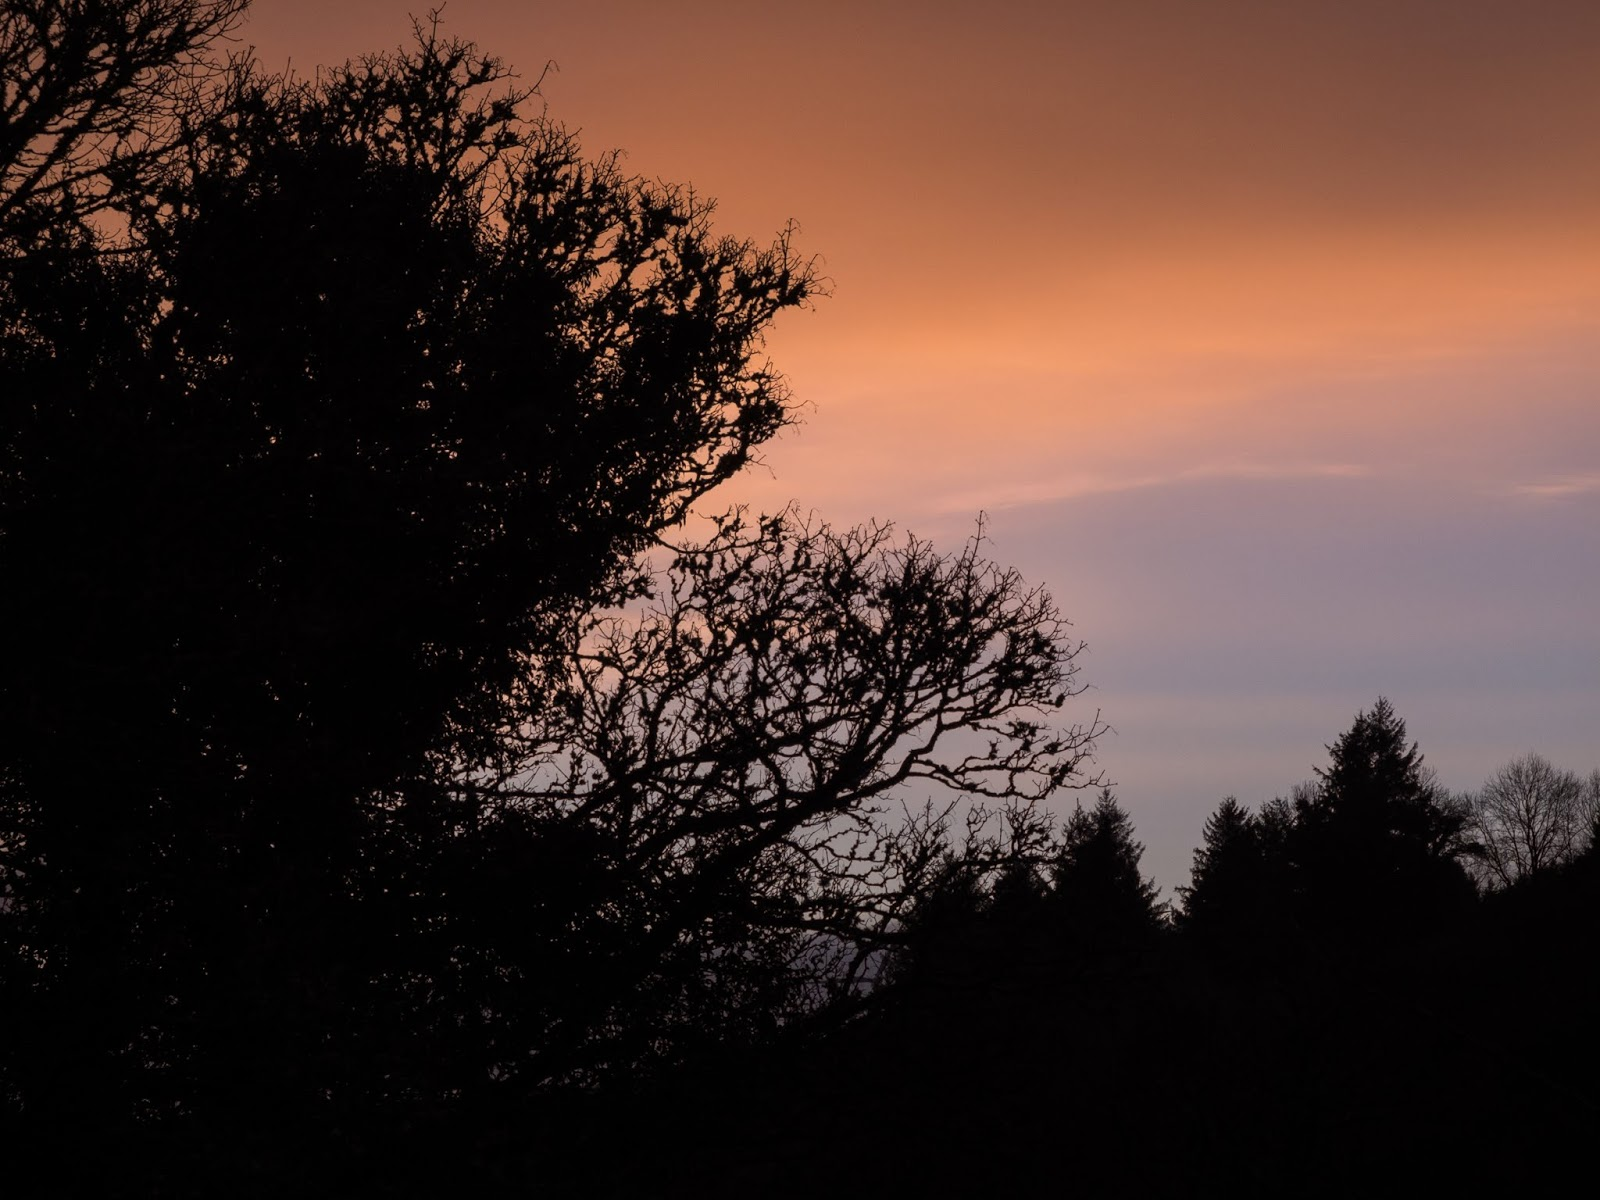 Orange sunset clouds over conifers and bare deciduous tree branches.